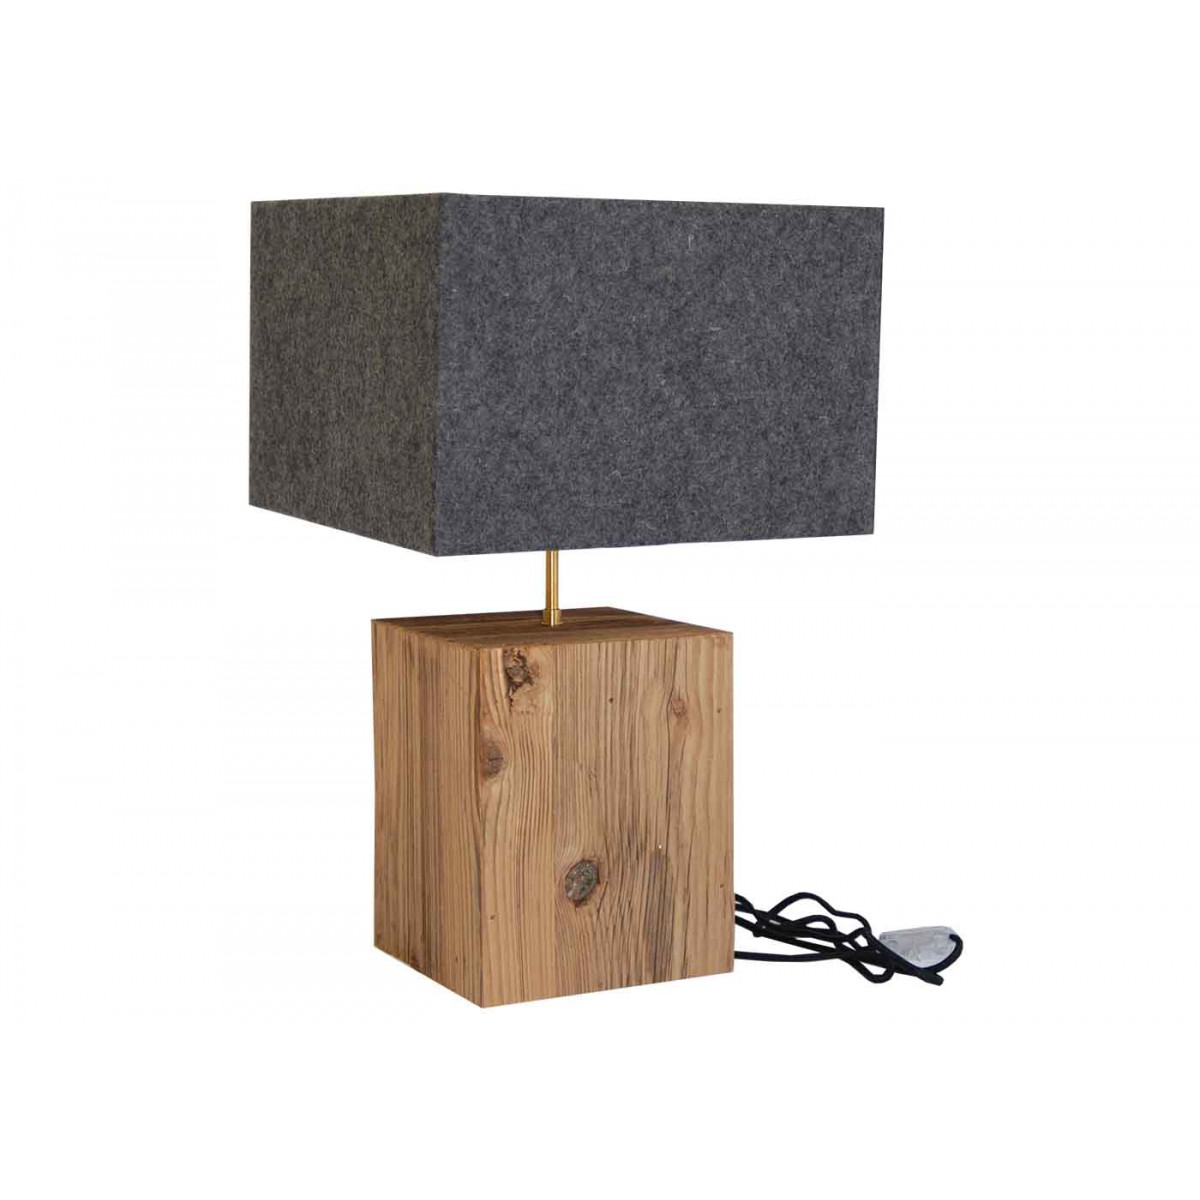 lampe d corative design montagne en laine feutr e et bois. Black Bedroom Furniture Sets. Home Design Ideas